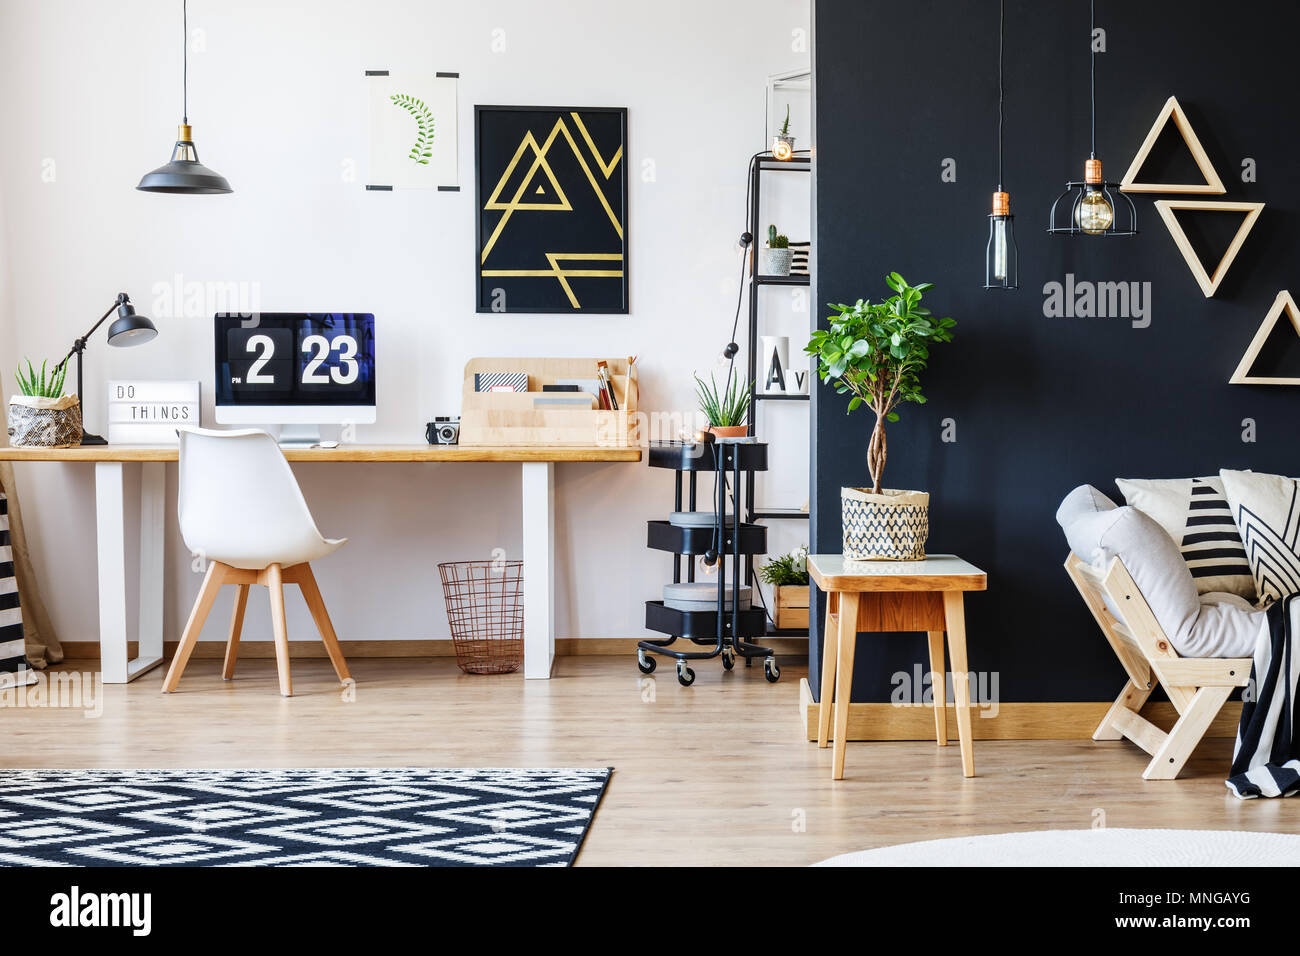 Nordic natural interior in stylish open studio for a freelancer with sofa, black wall and office space with desk and black accent - Stock Image